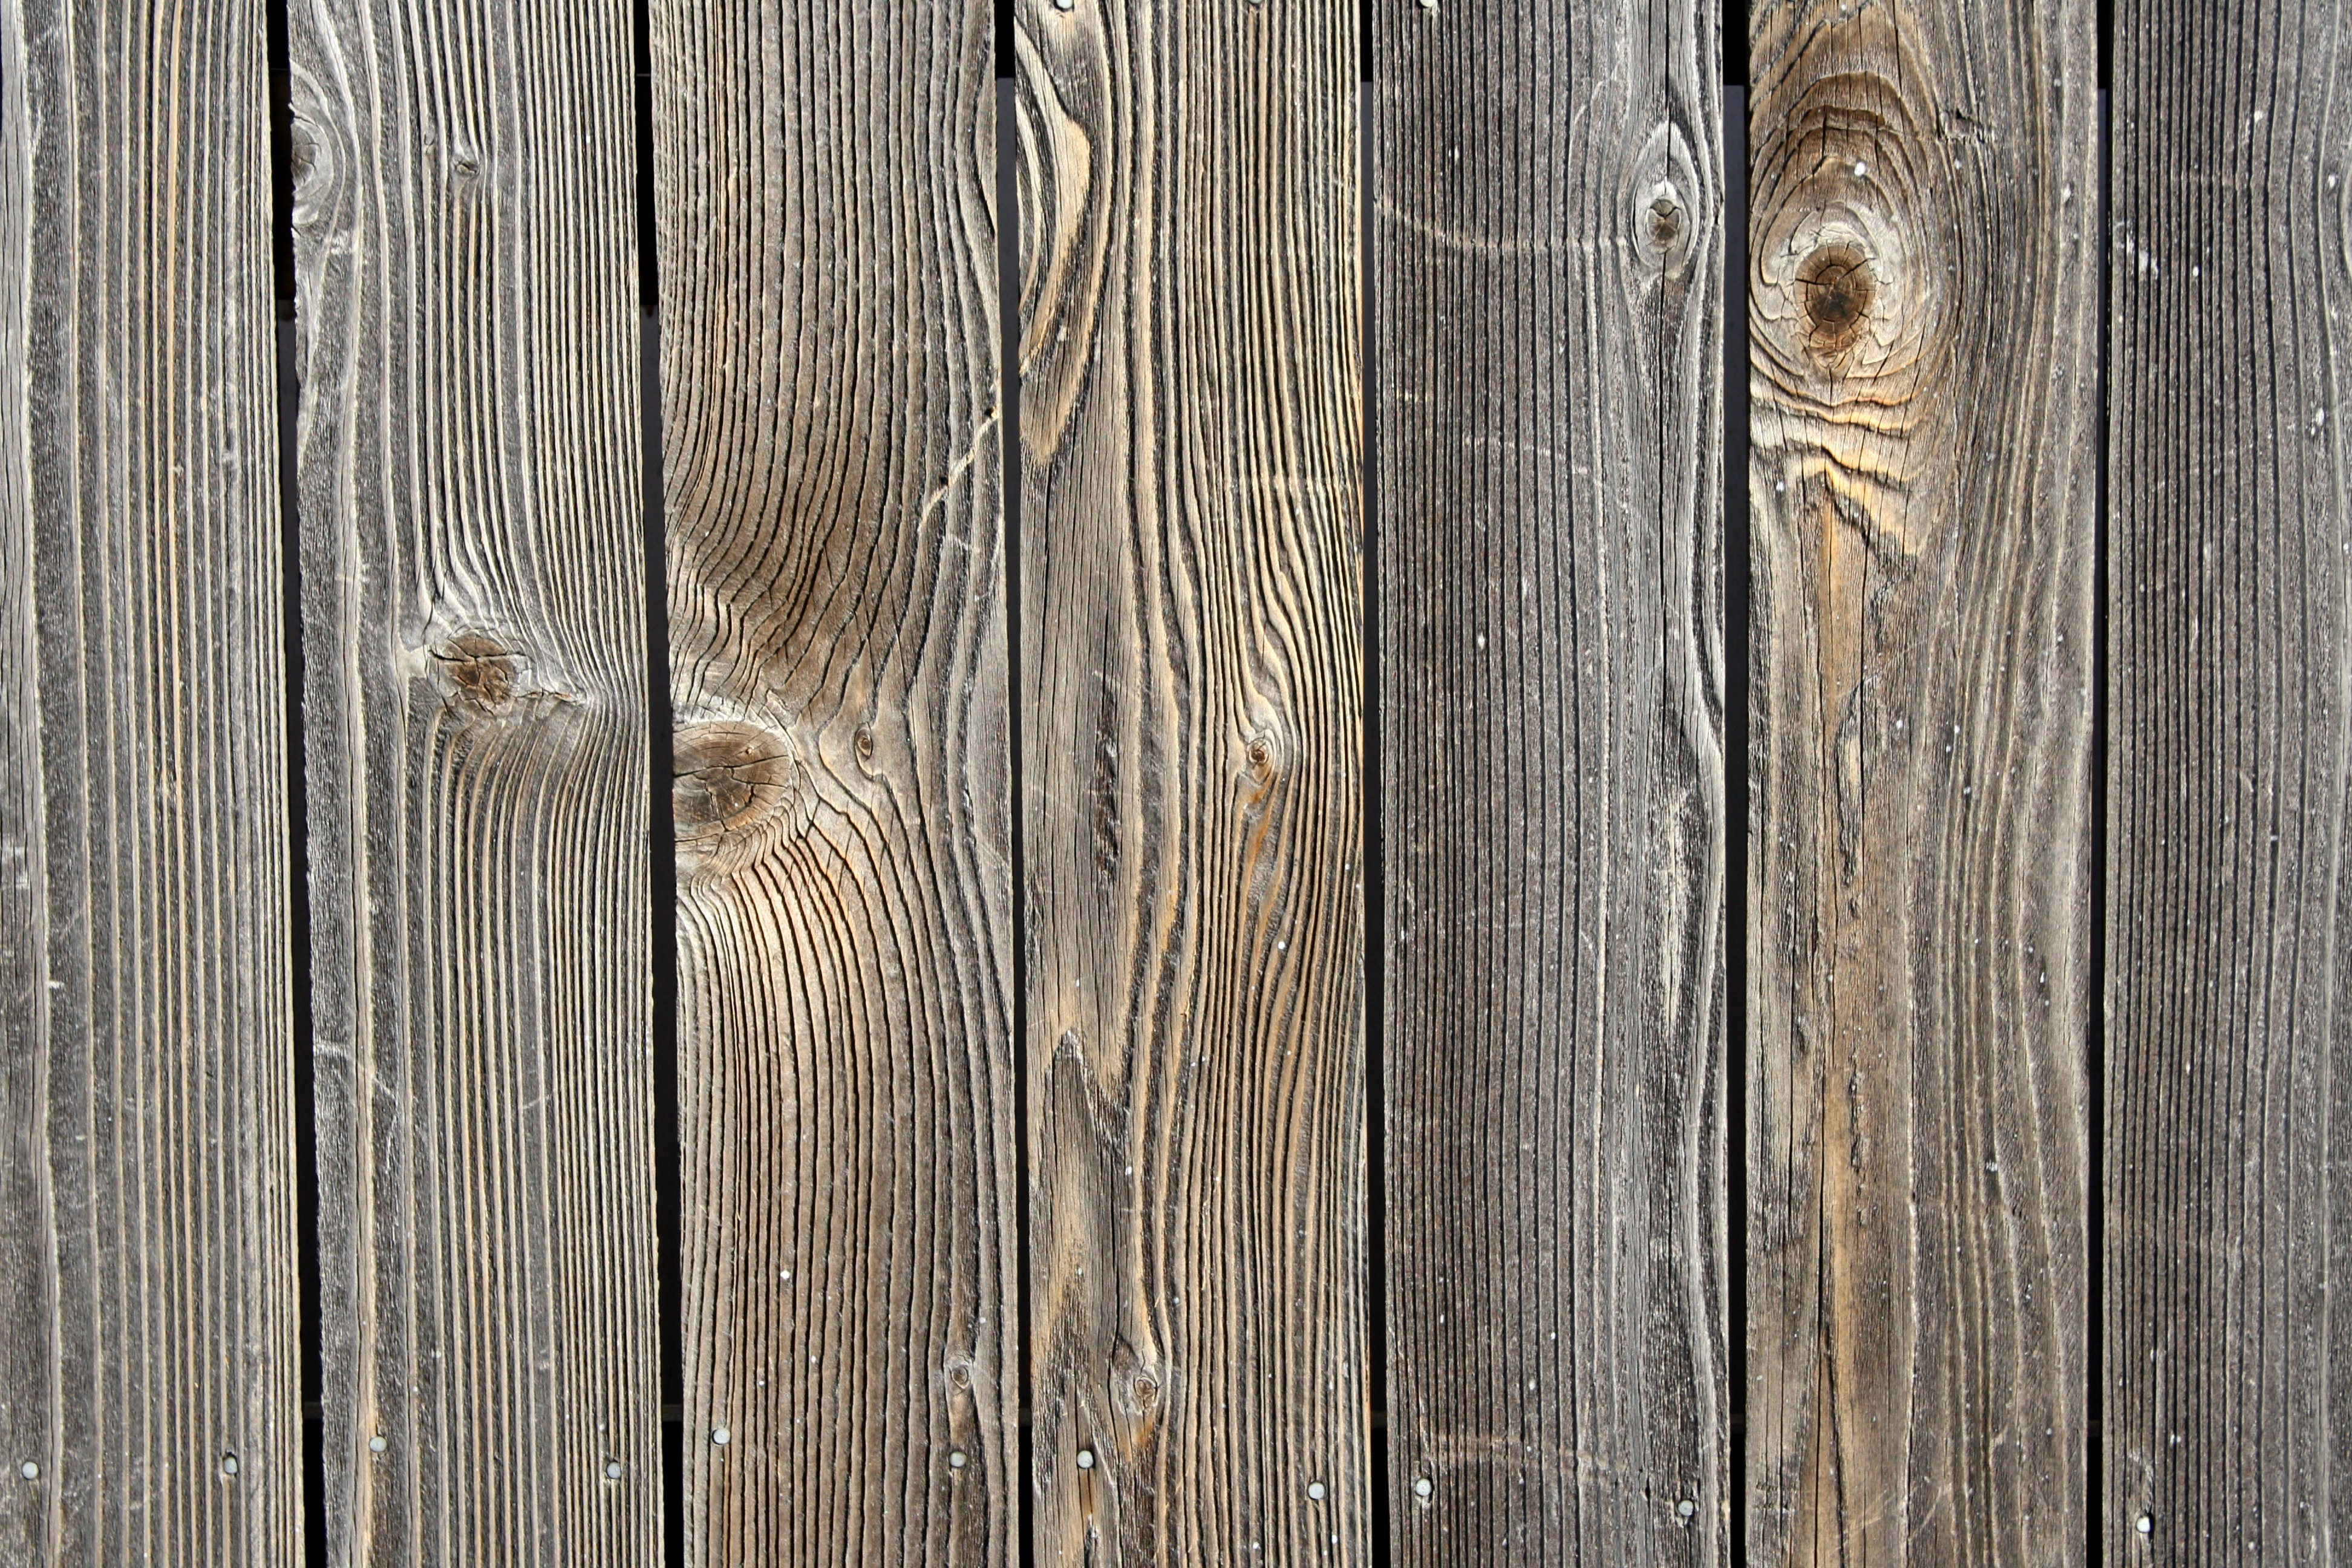 Weathered Wooden Boards Texture   High Resolution Photo 3888x2592